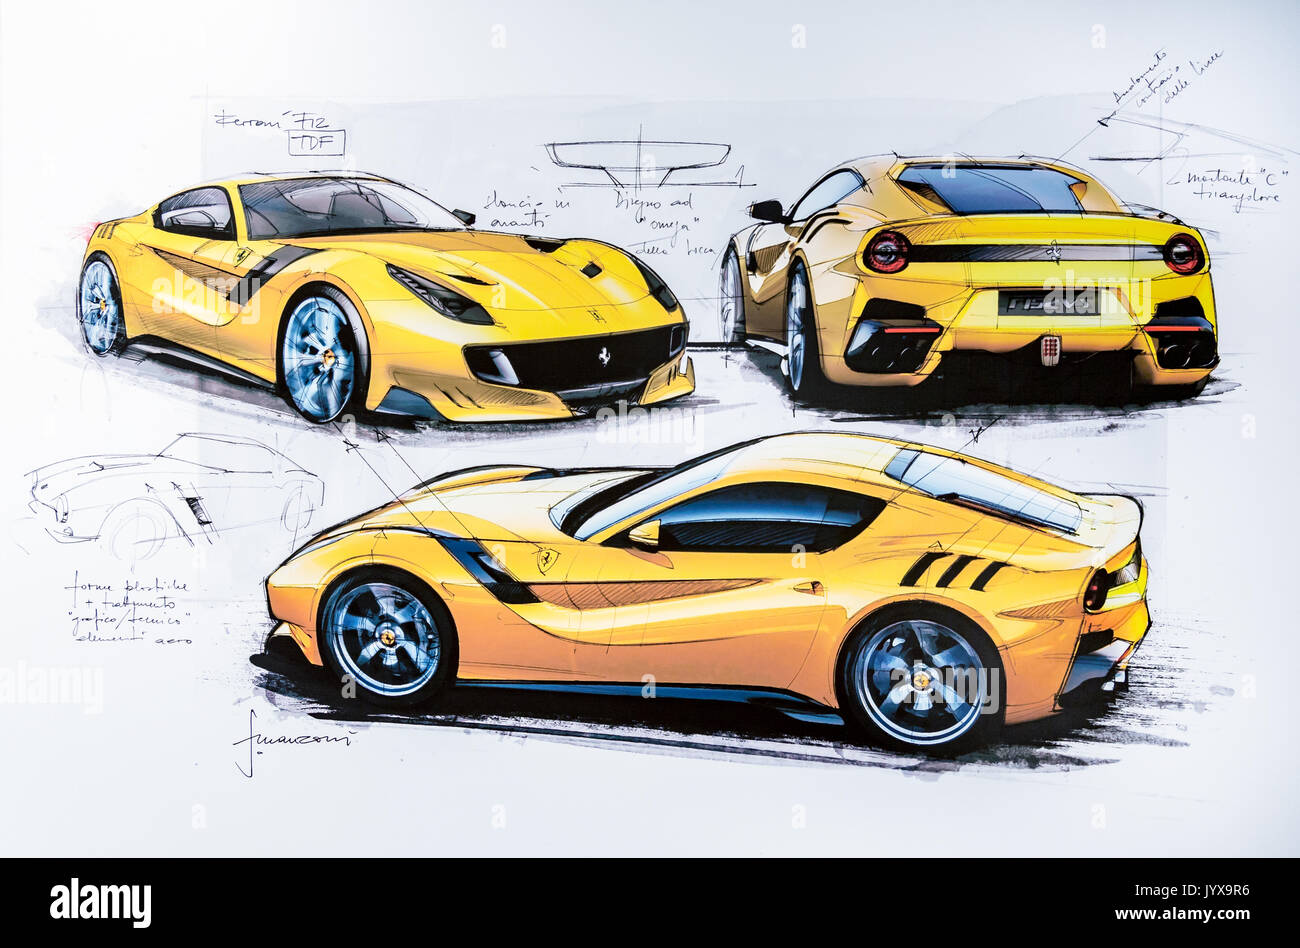 Concept Car Sketch High Resolution Stock Photography And Images Alamy